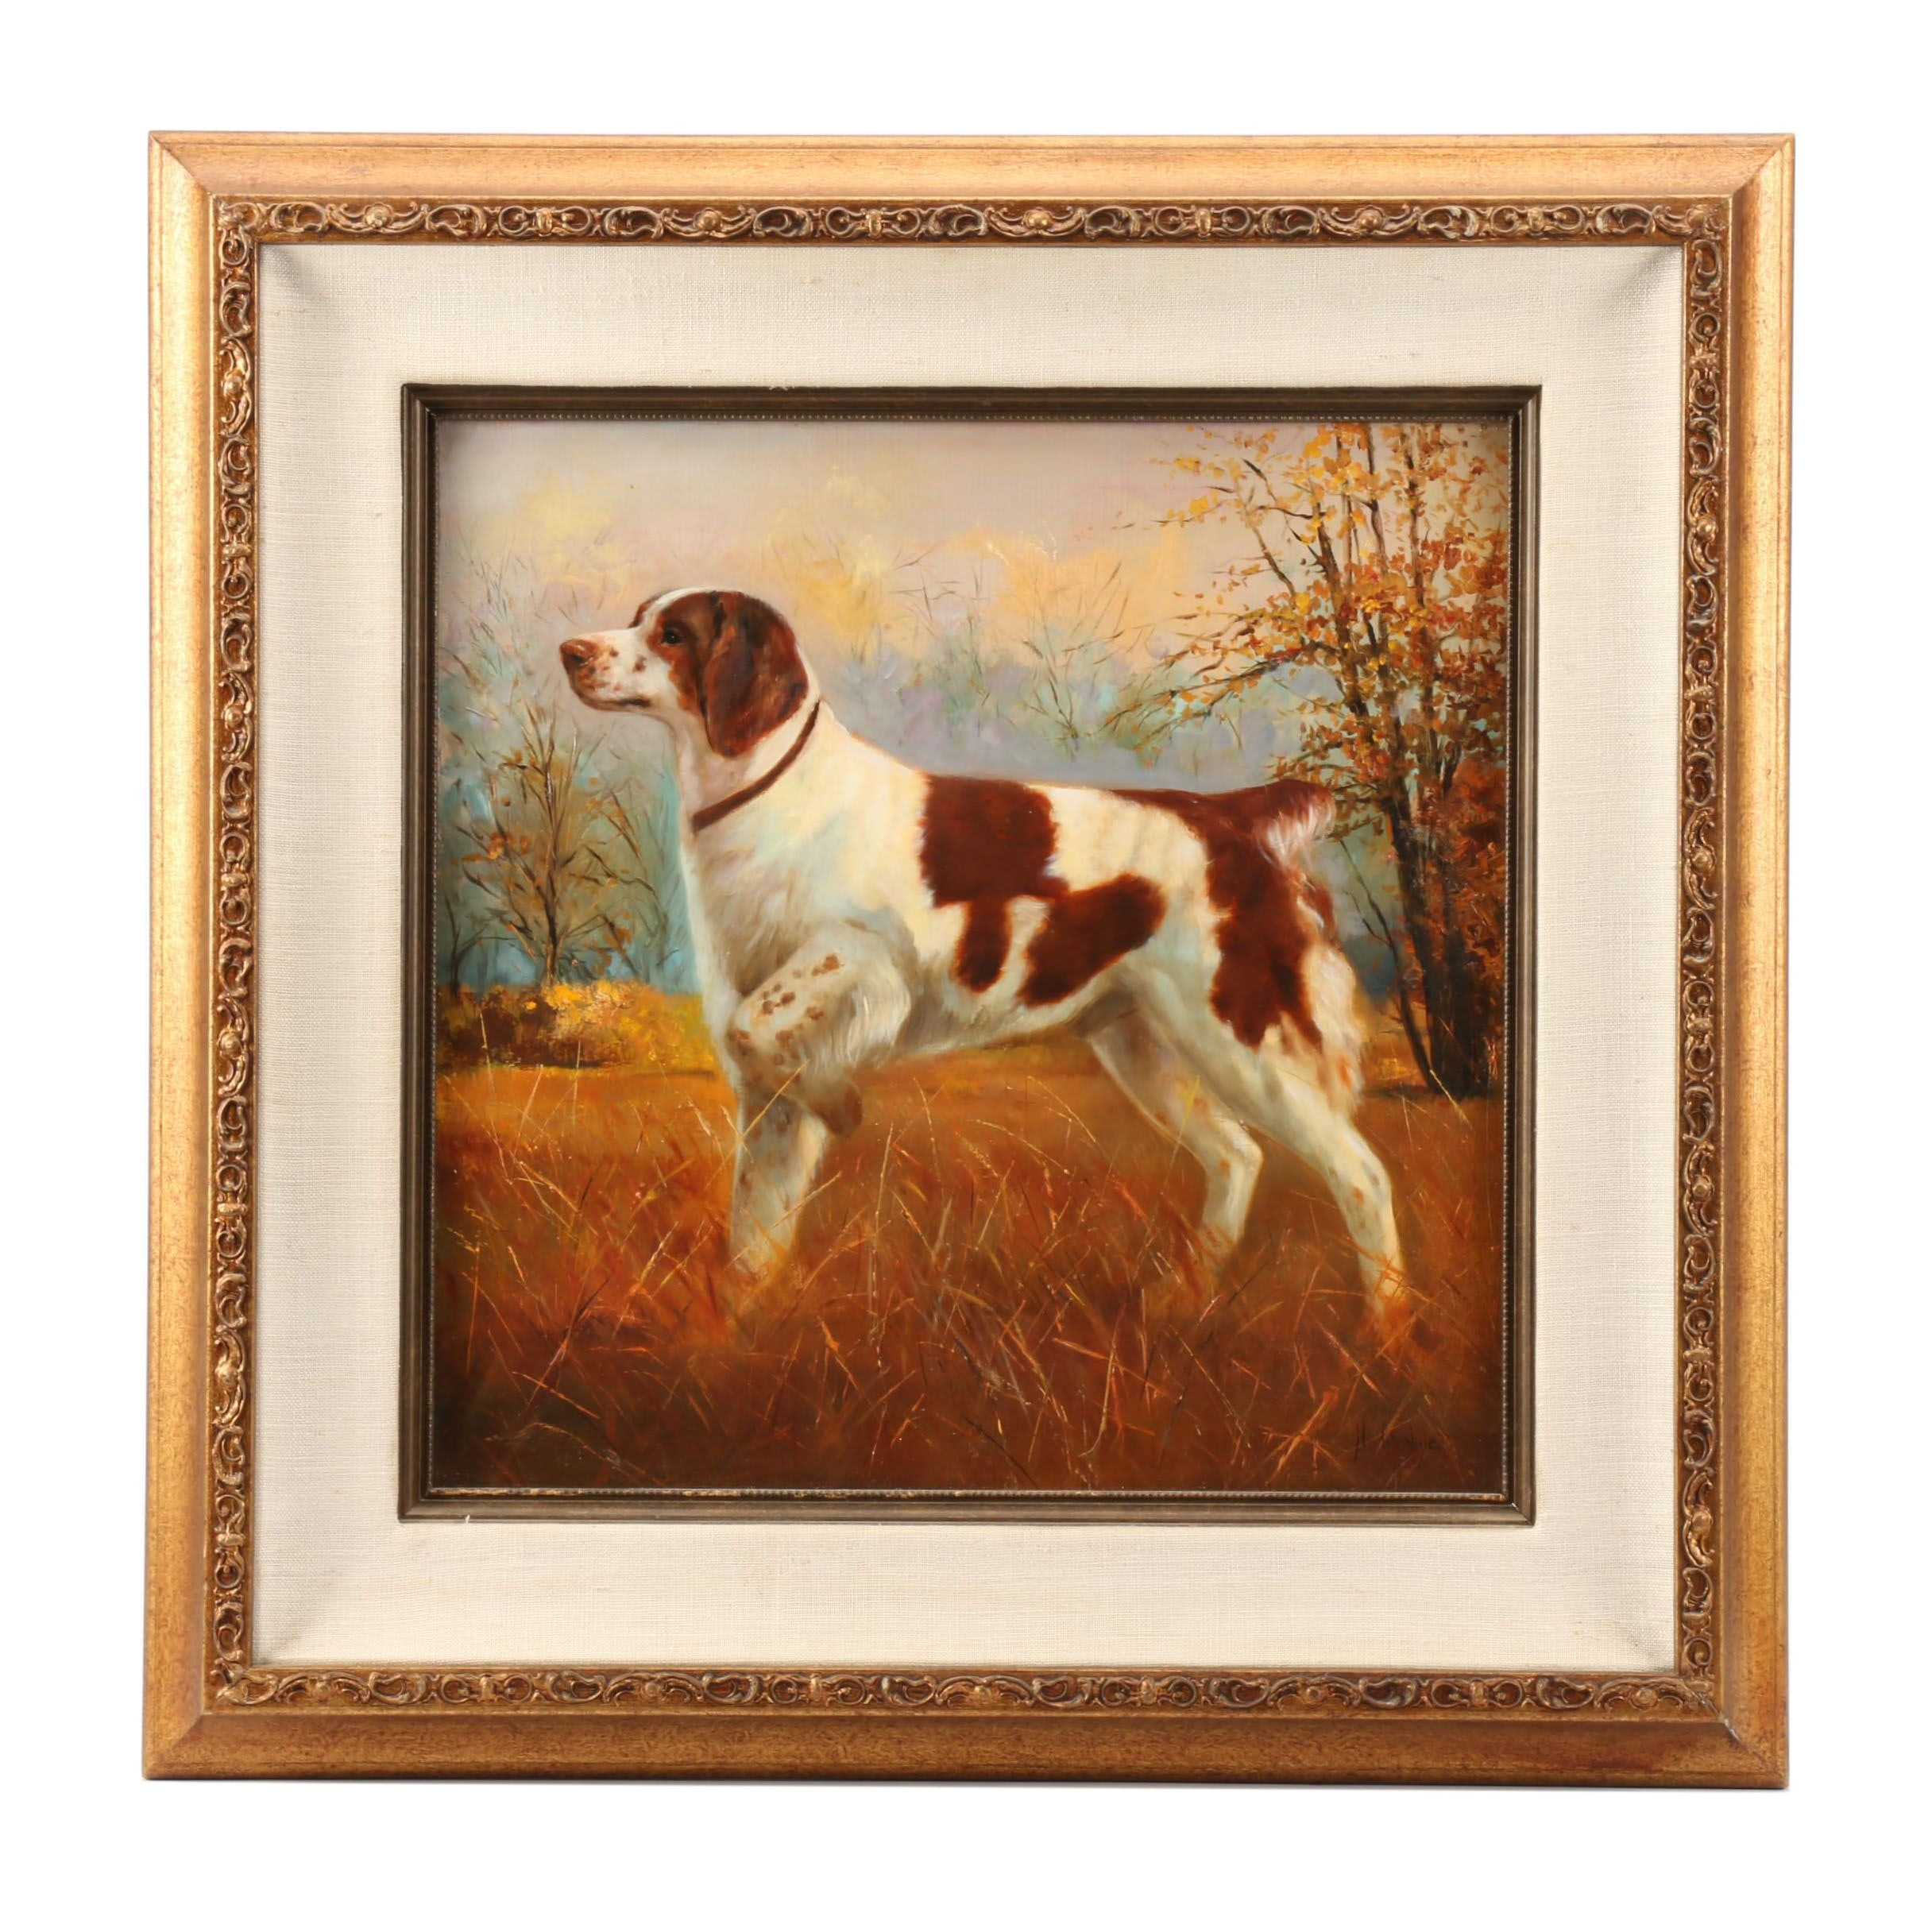 N. Carlyle Oil Painting of a Hunting Dog